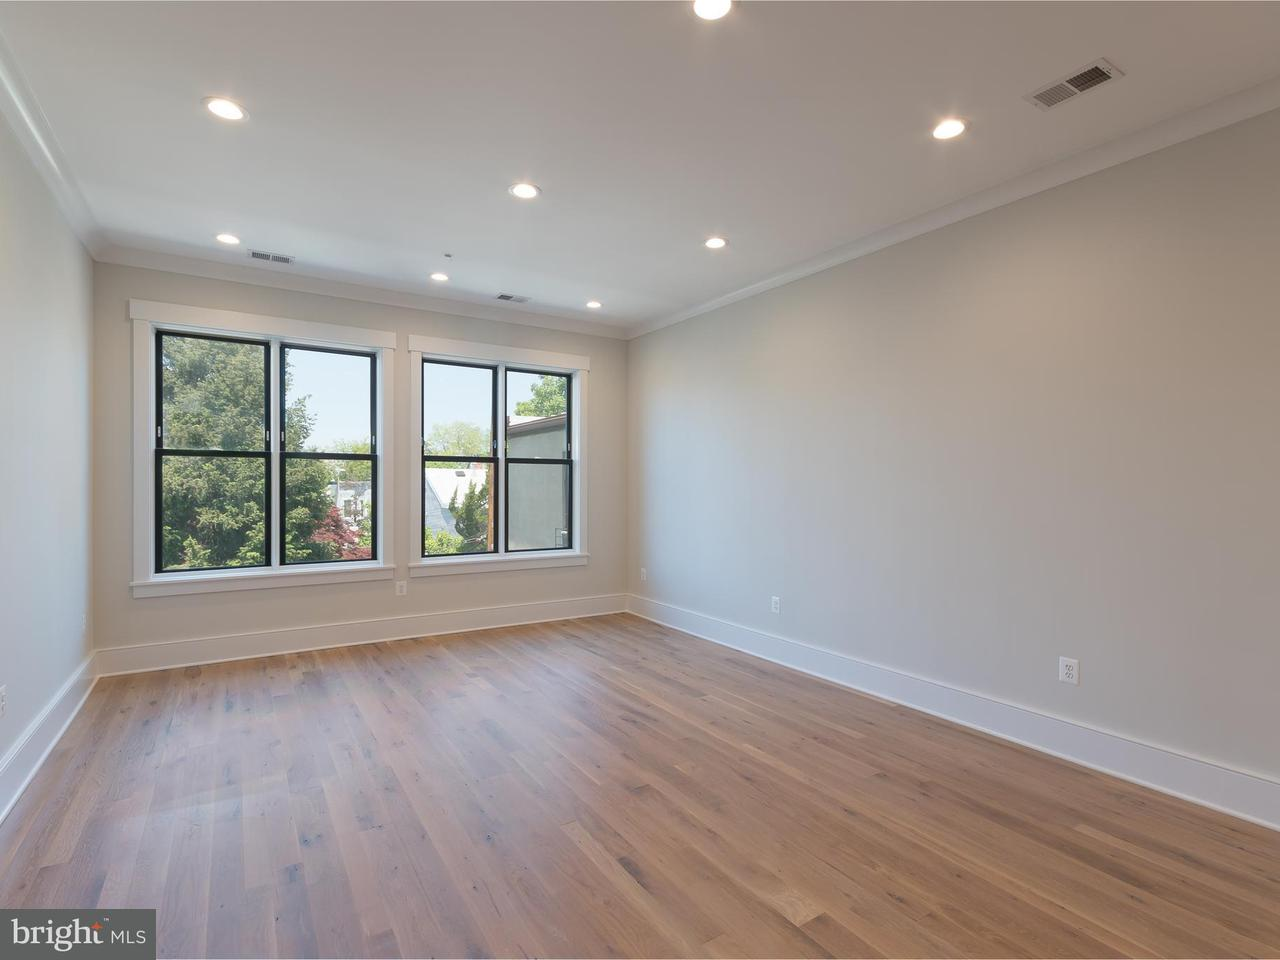 Other Residential for Rent at 504 C St NE #suite 4 Washington, District Of Columbia 20002 United States